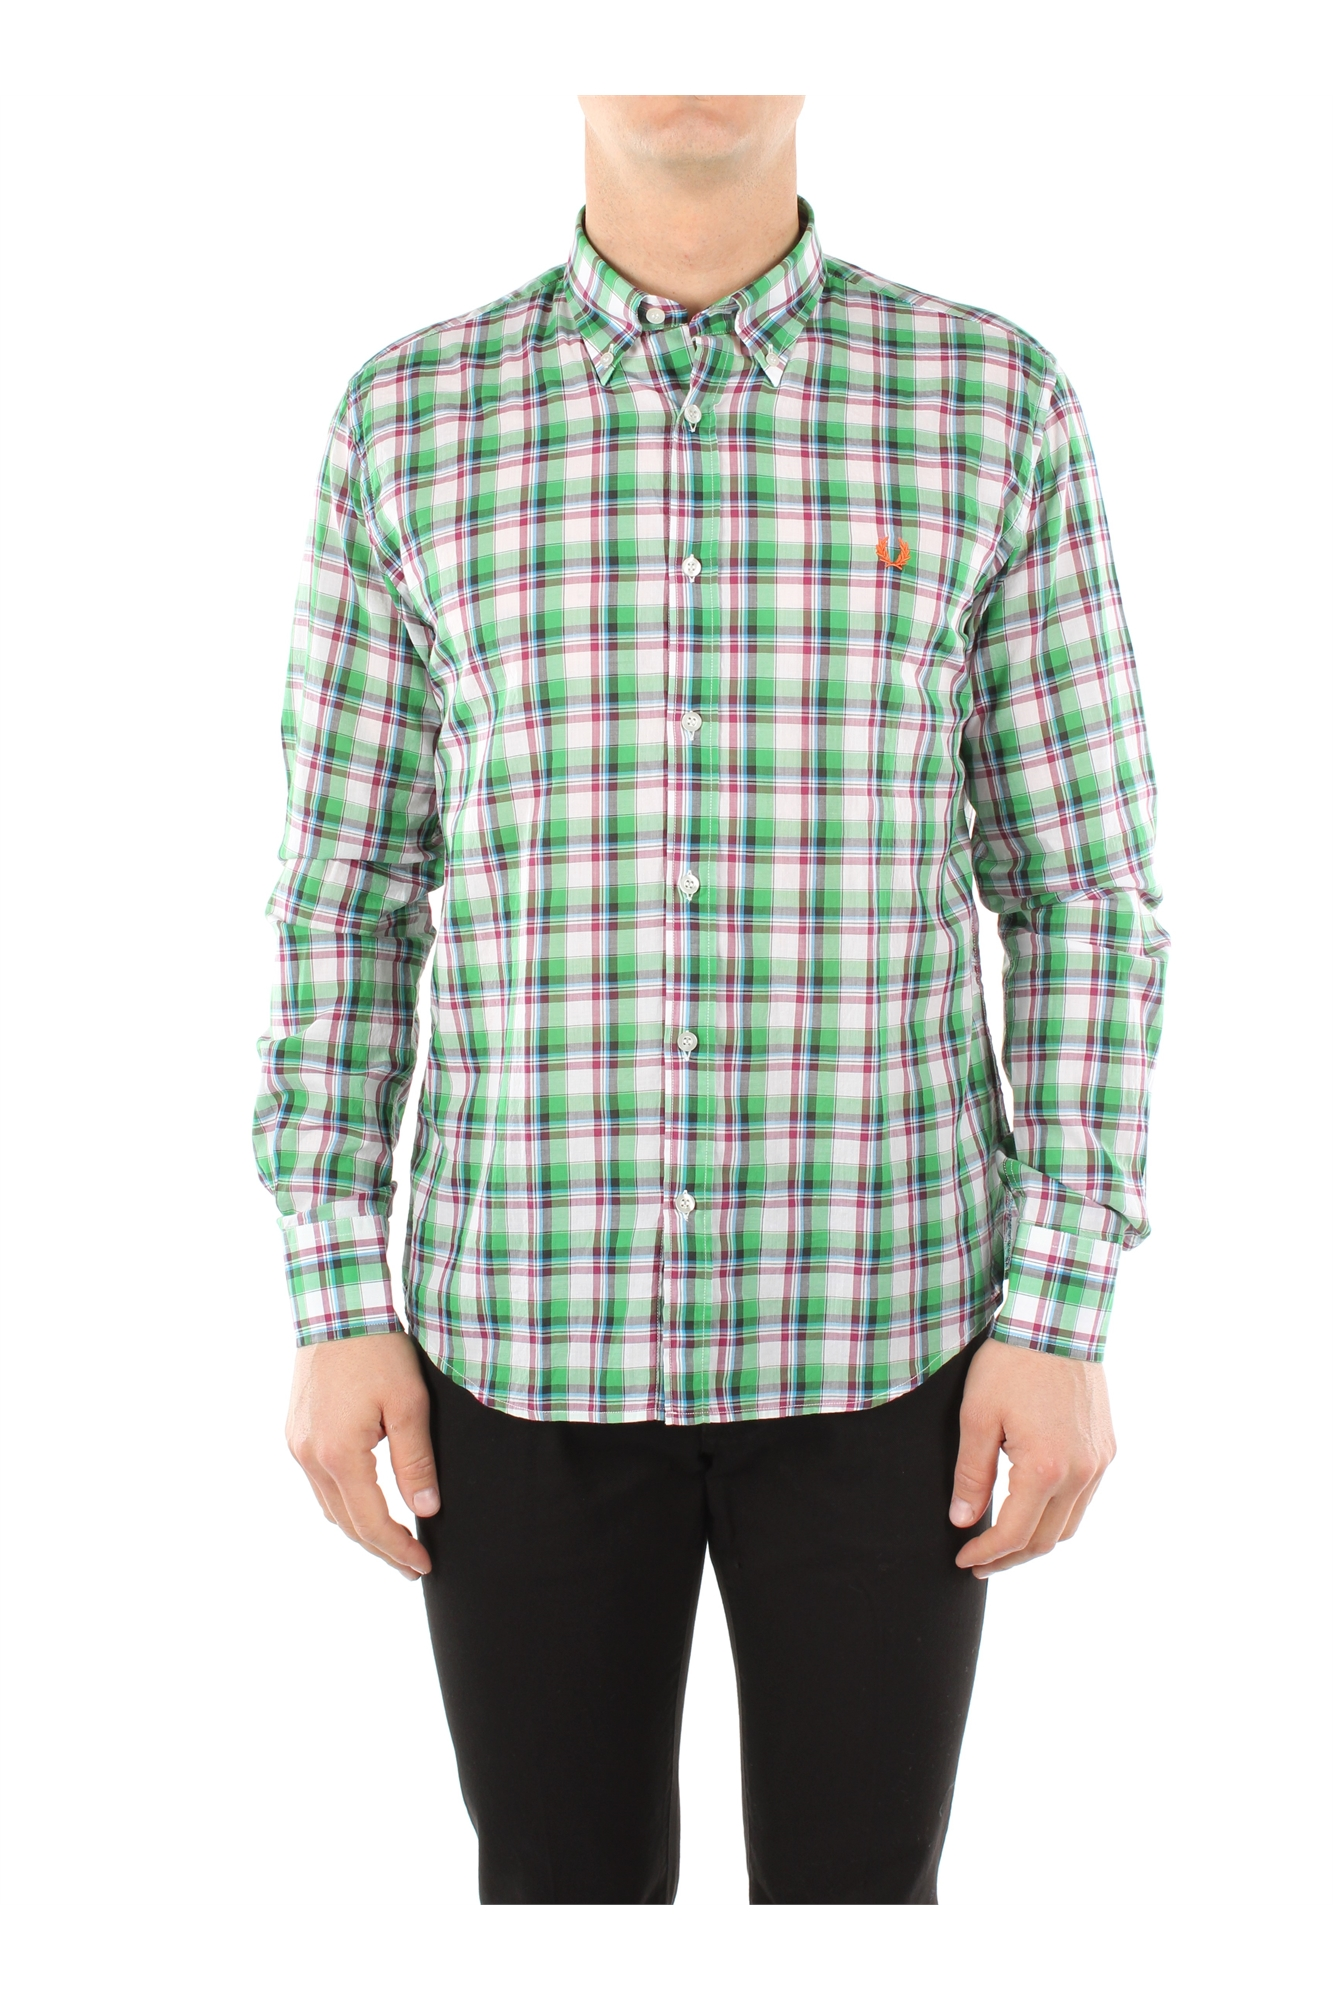 Fred perry shirts prices